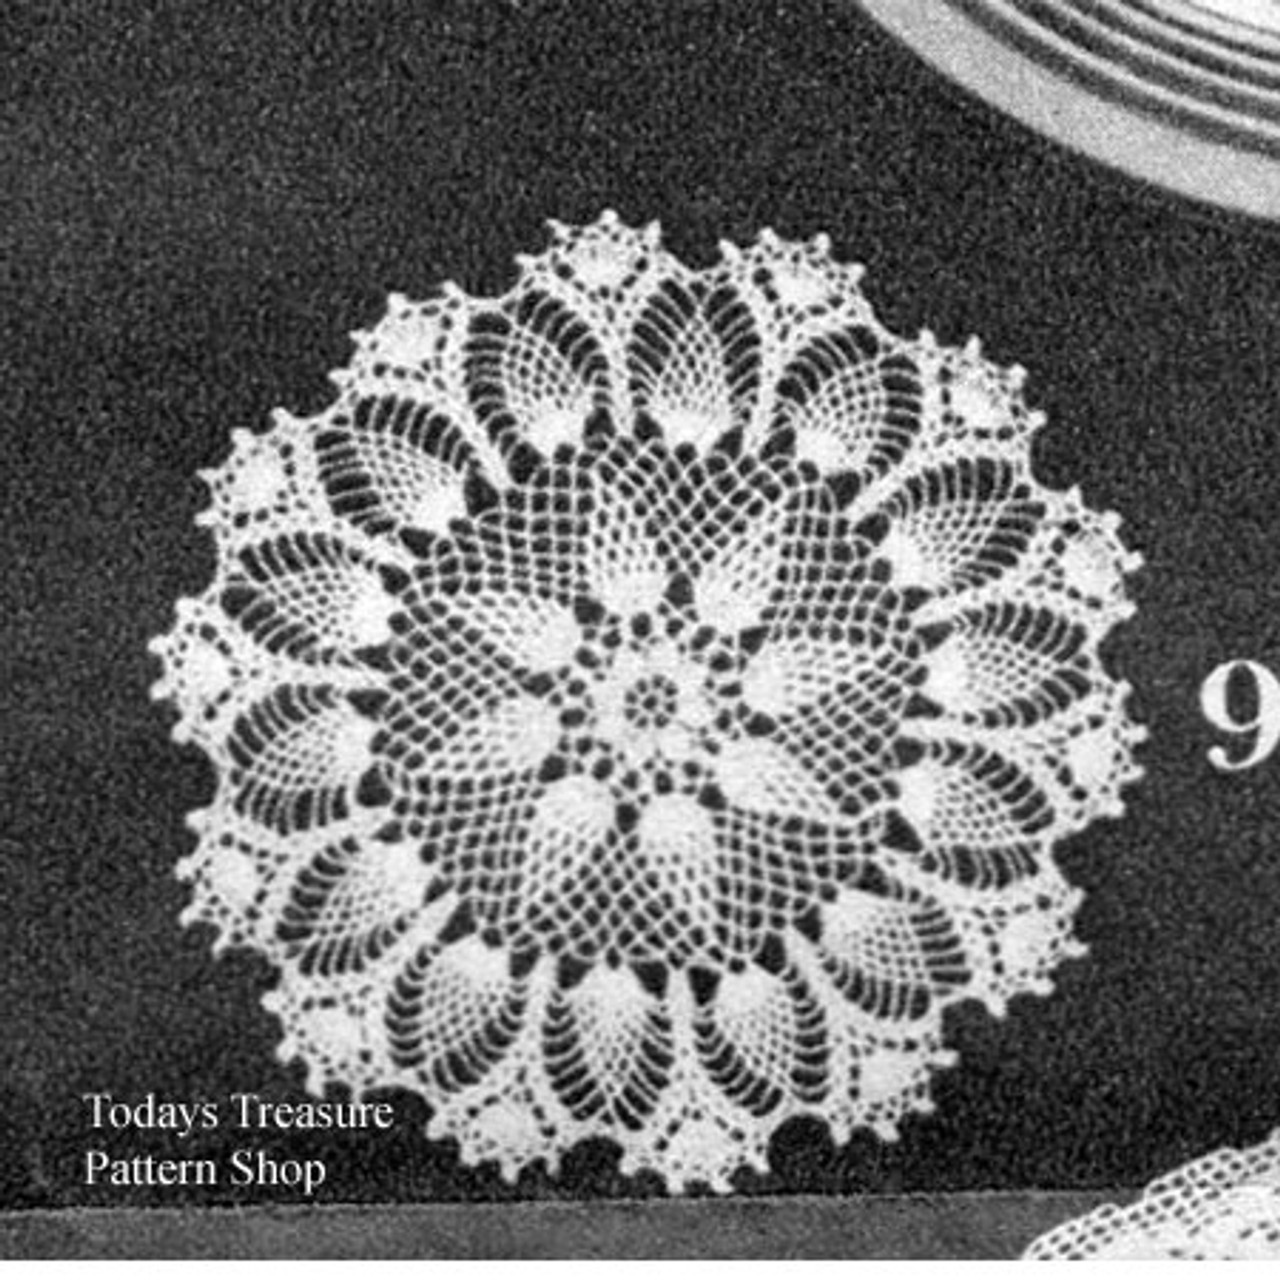 Vintage White Crocheted Doily Pattern from Womans Day Magazine